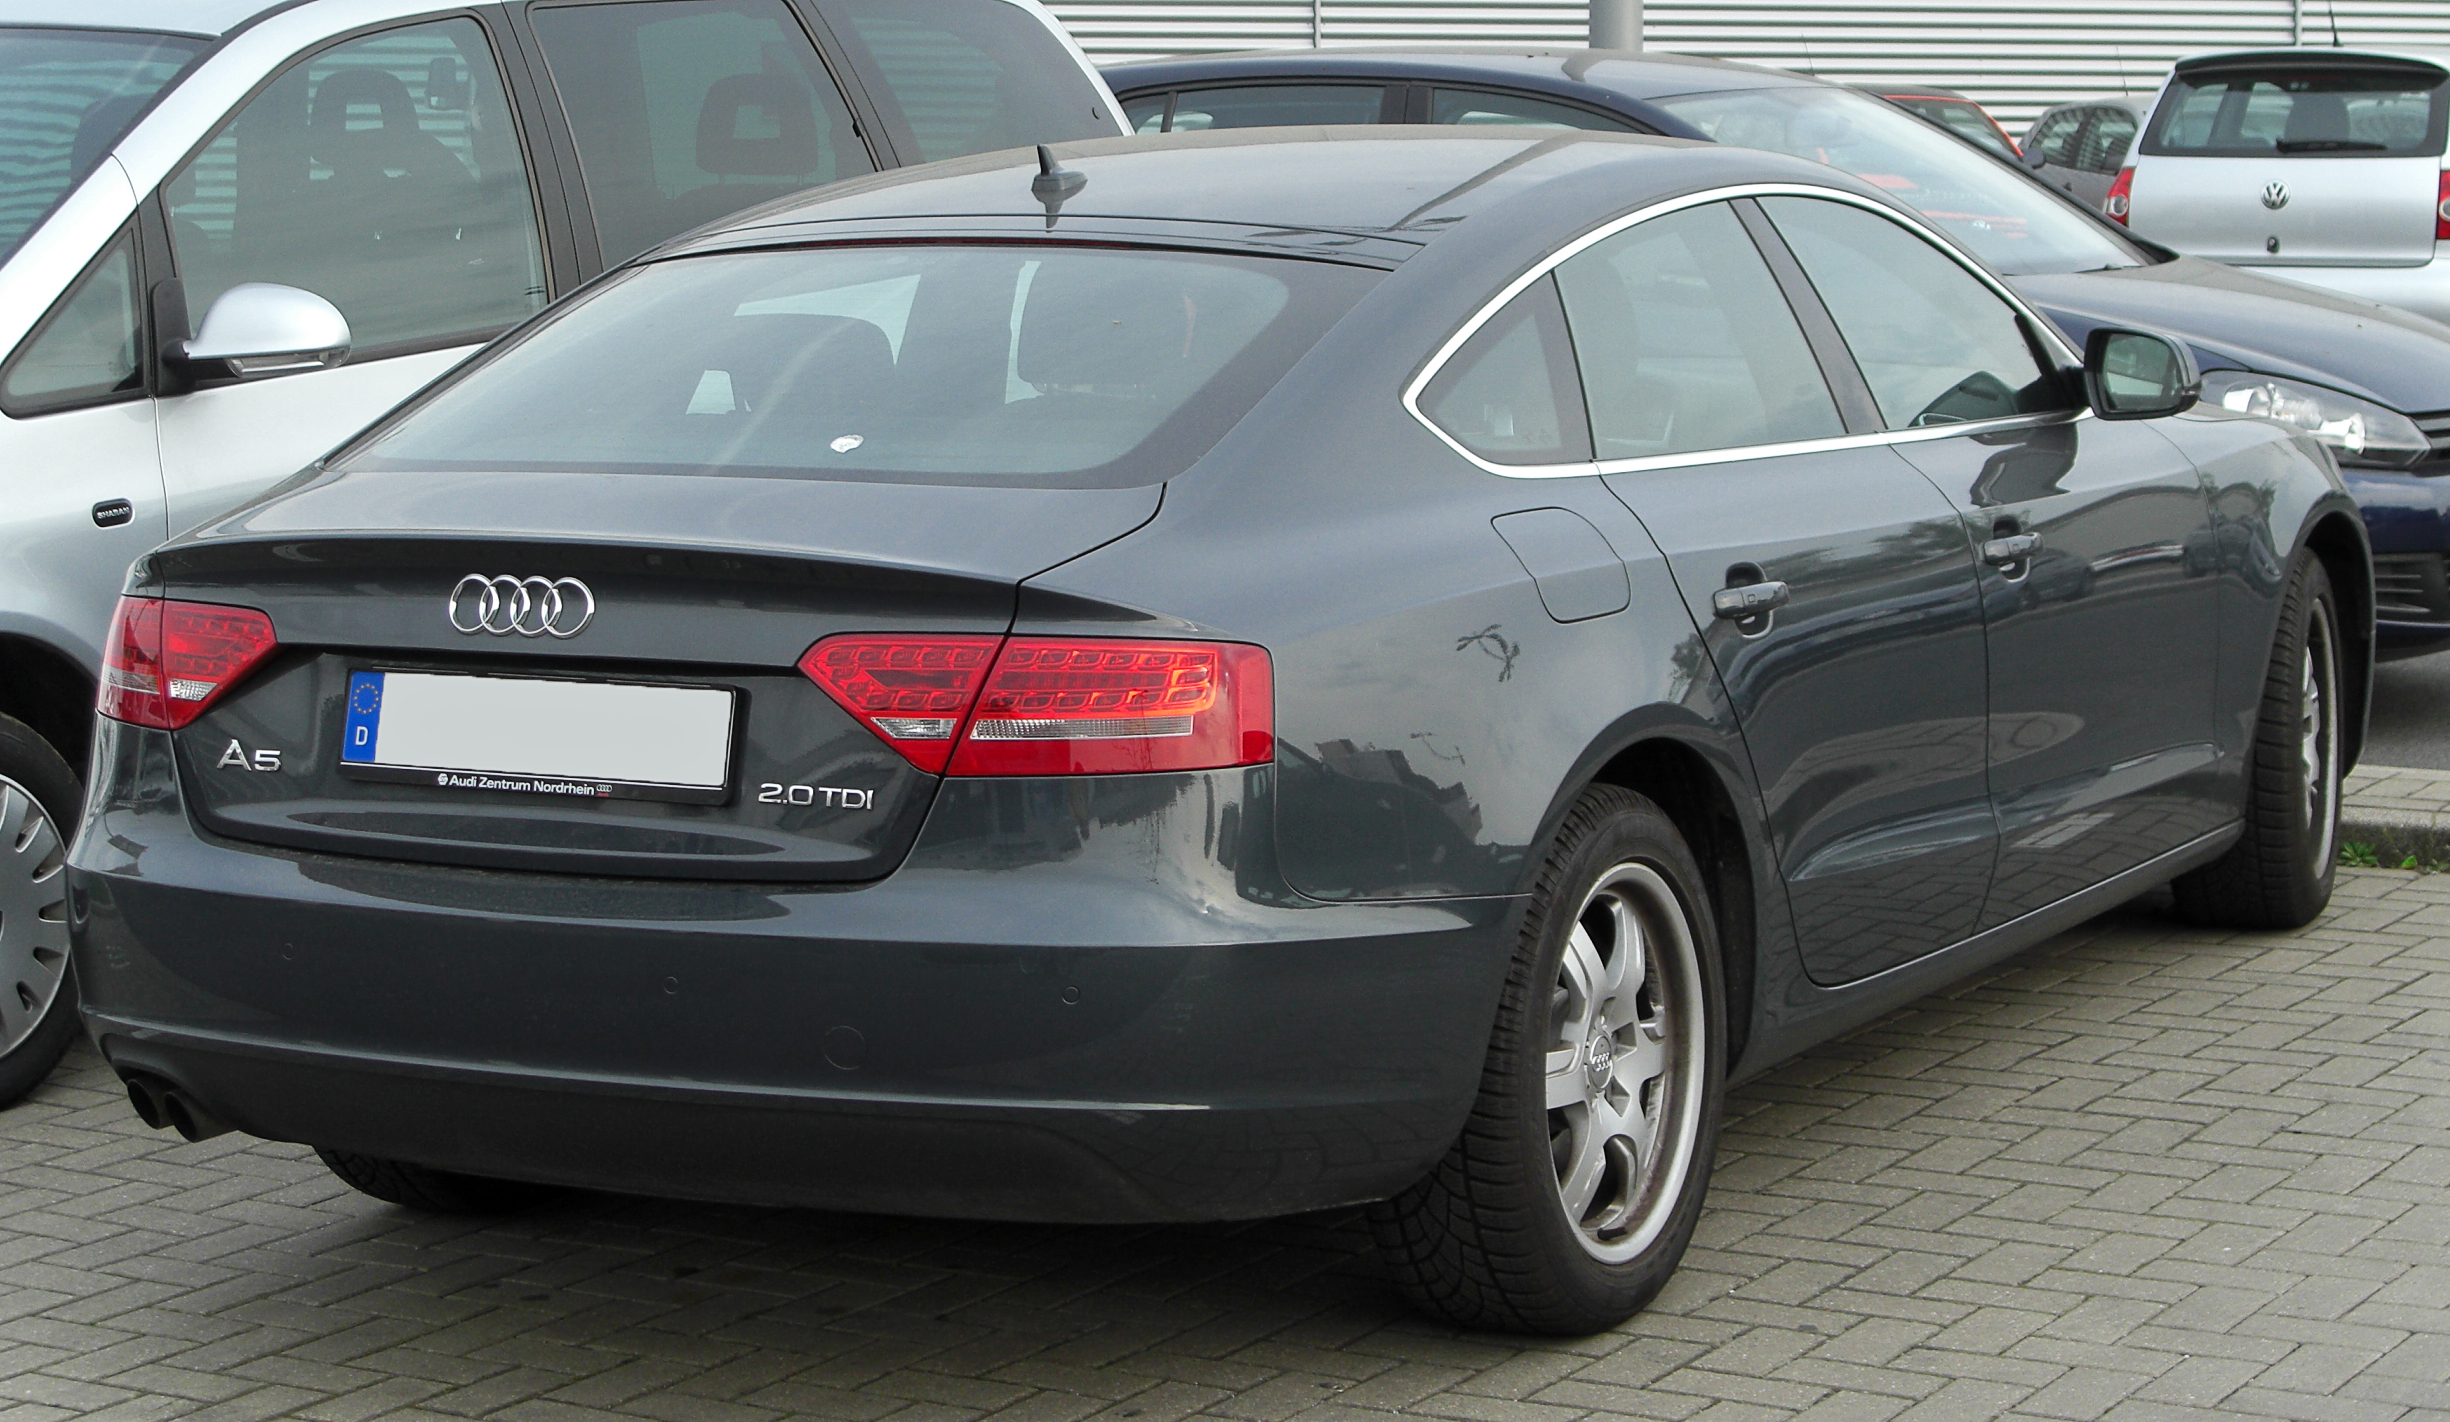 Audi A5 Sportback 2 0 Tdi Photos 2 On Better Parts Ltd